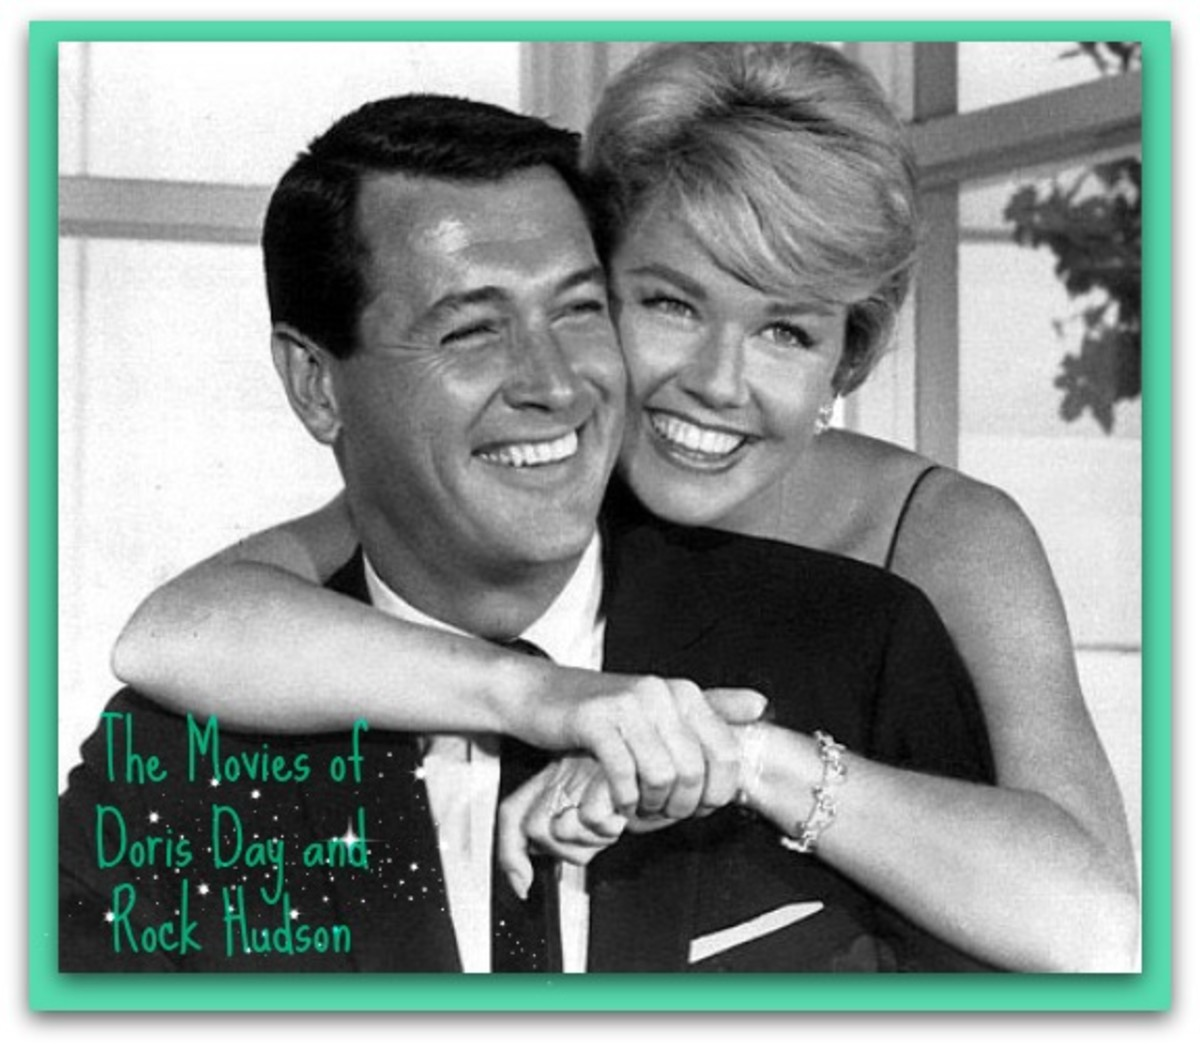 The Movies of Doris Day and Rock Hudson